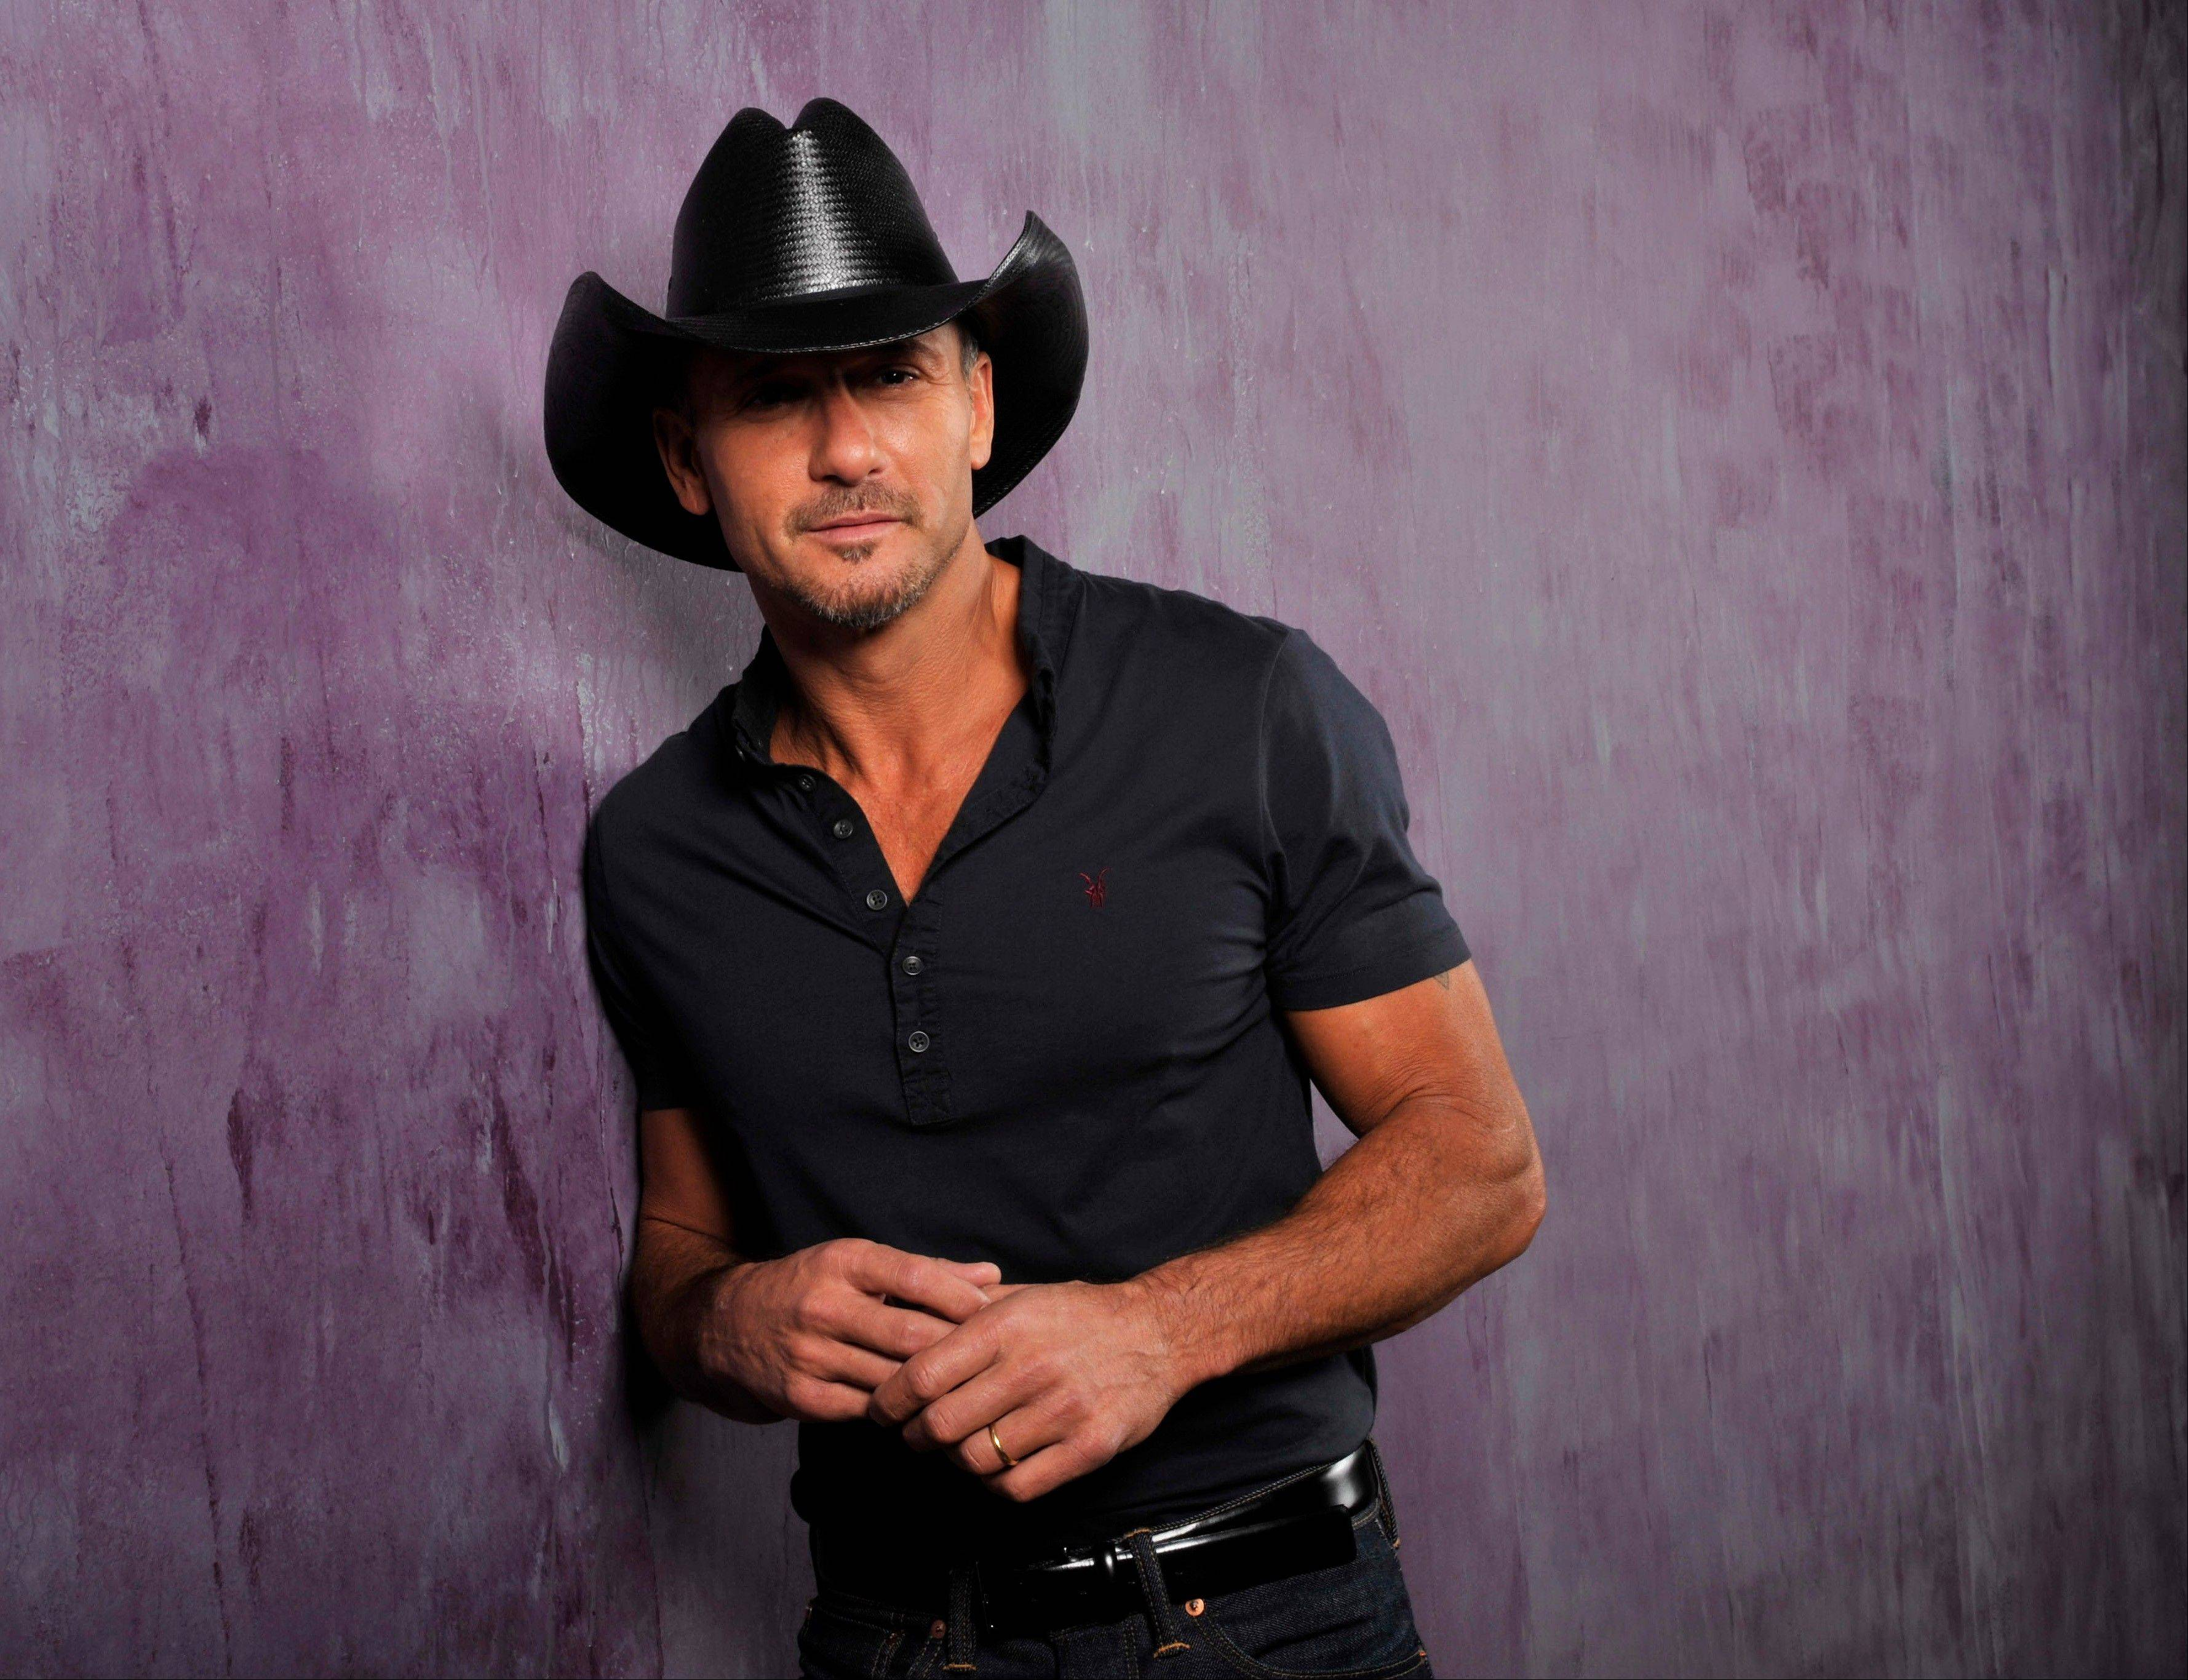 Weekend picks: Go country with McGraw, Wilson